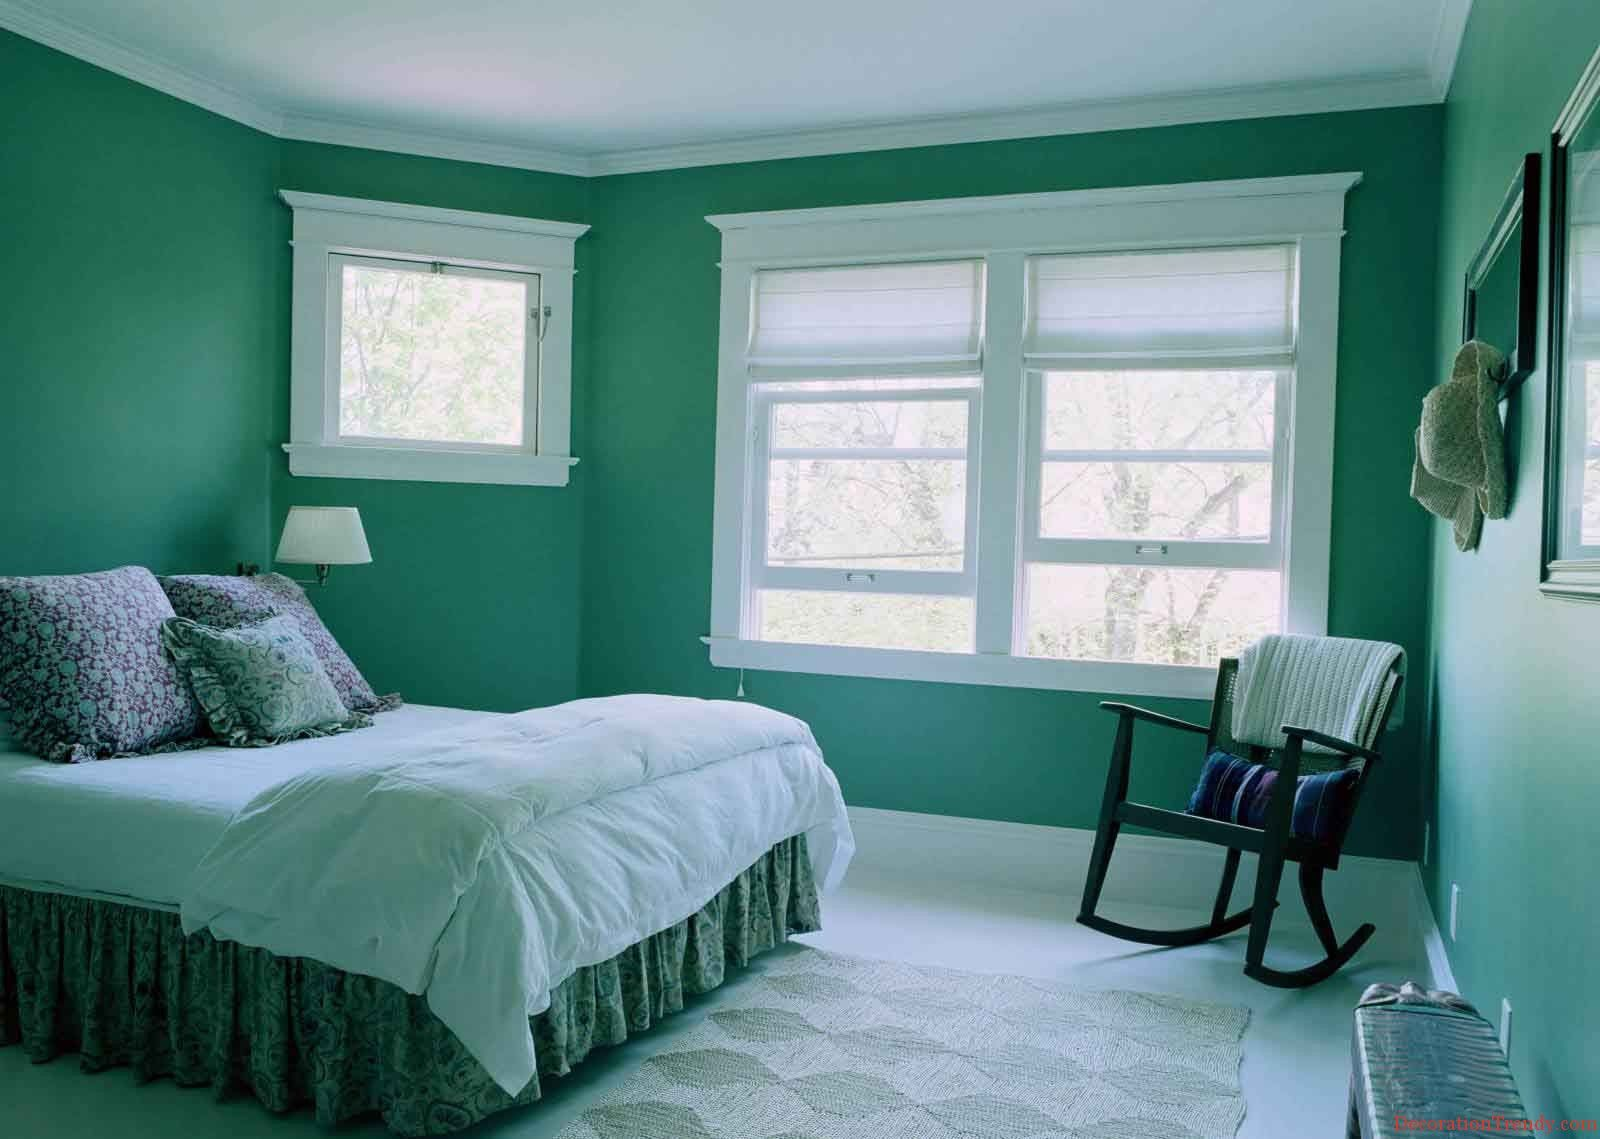 Bedroom wall paint color combinations - Wall Color Combination Design Ideas And Photos Get Creative Wall Painting Ideas Designs For